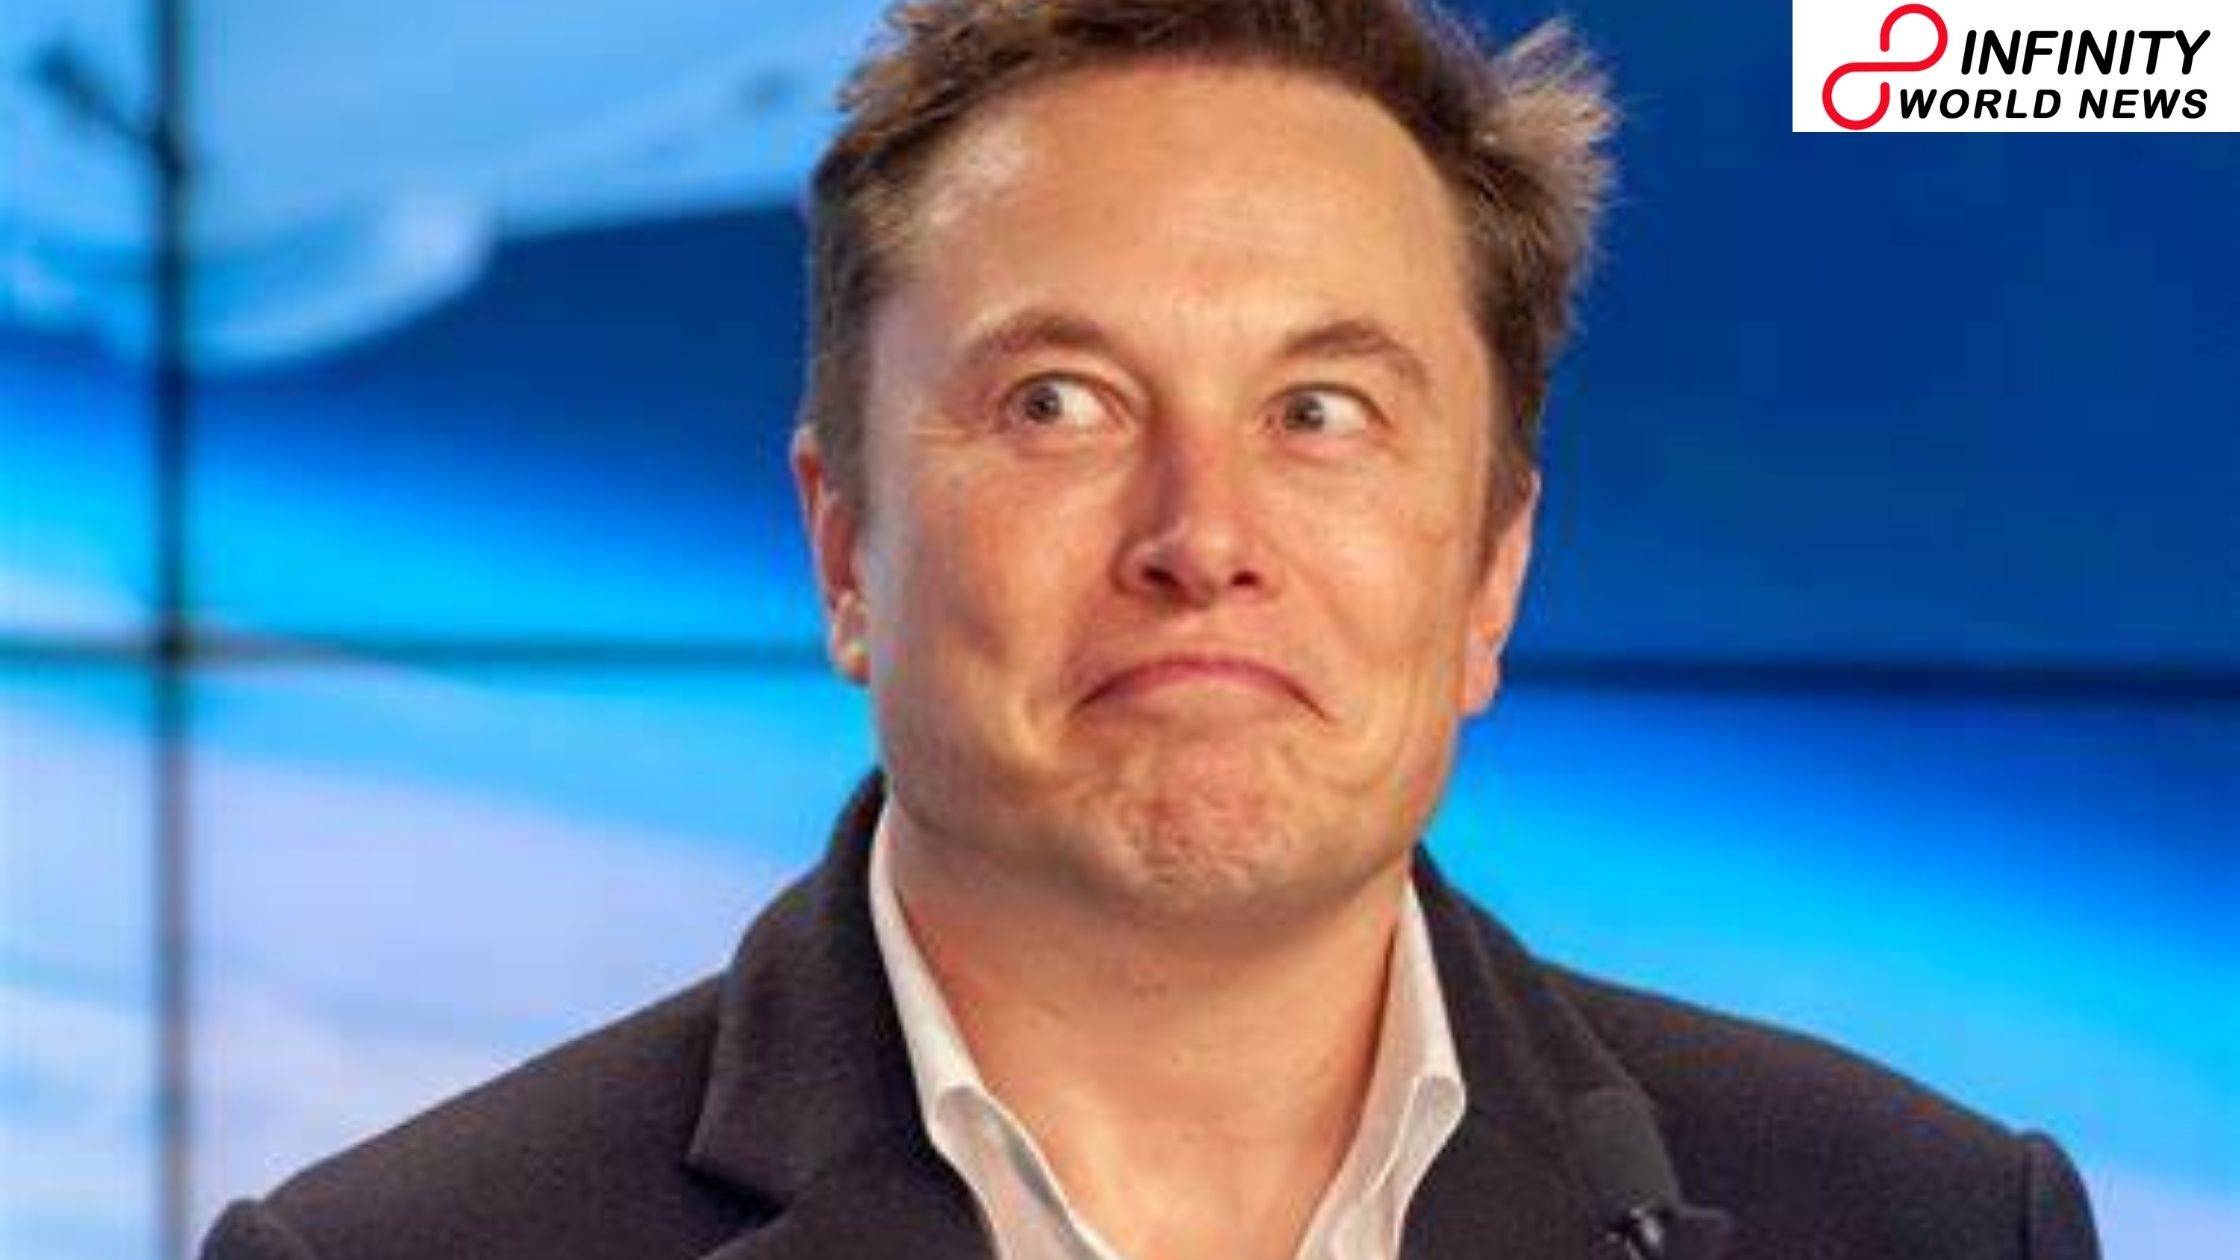 Elon Musk requests that Twitterati use WhatsApp rival yet. Instead, they sent a load of disconnected organization flying